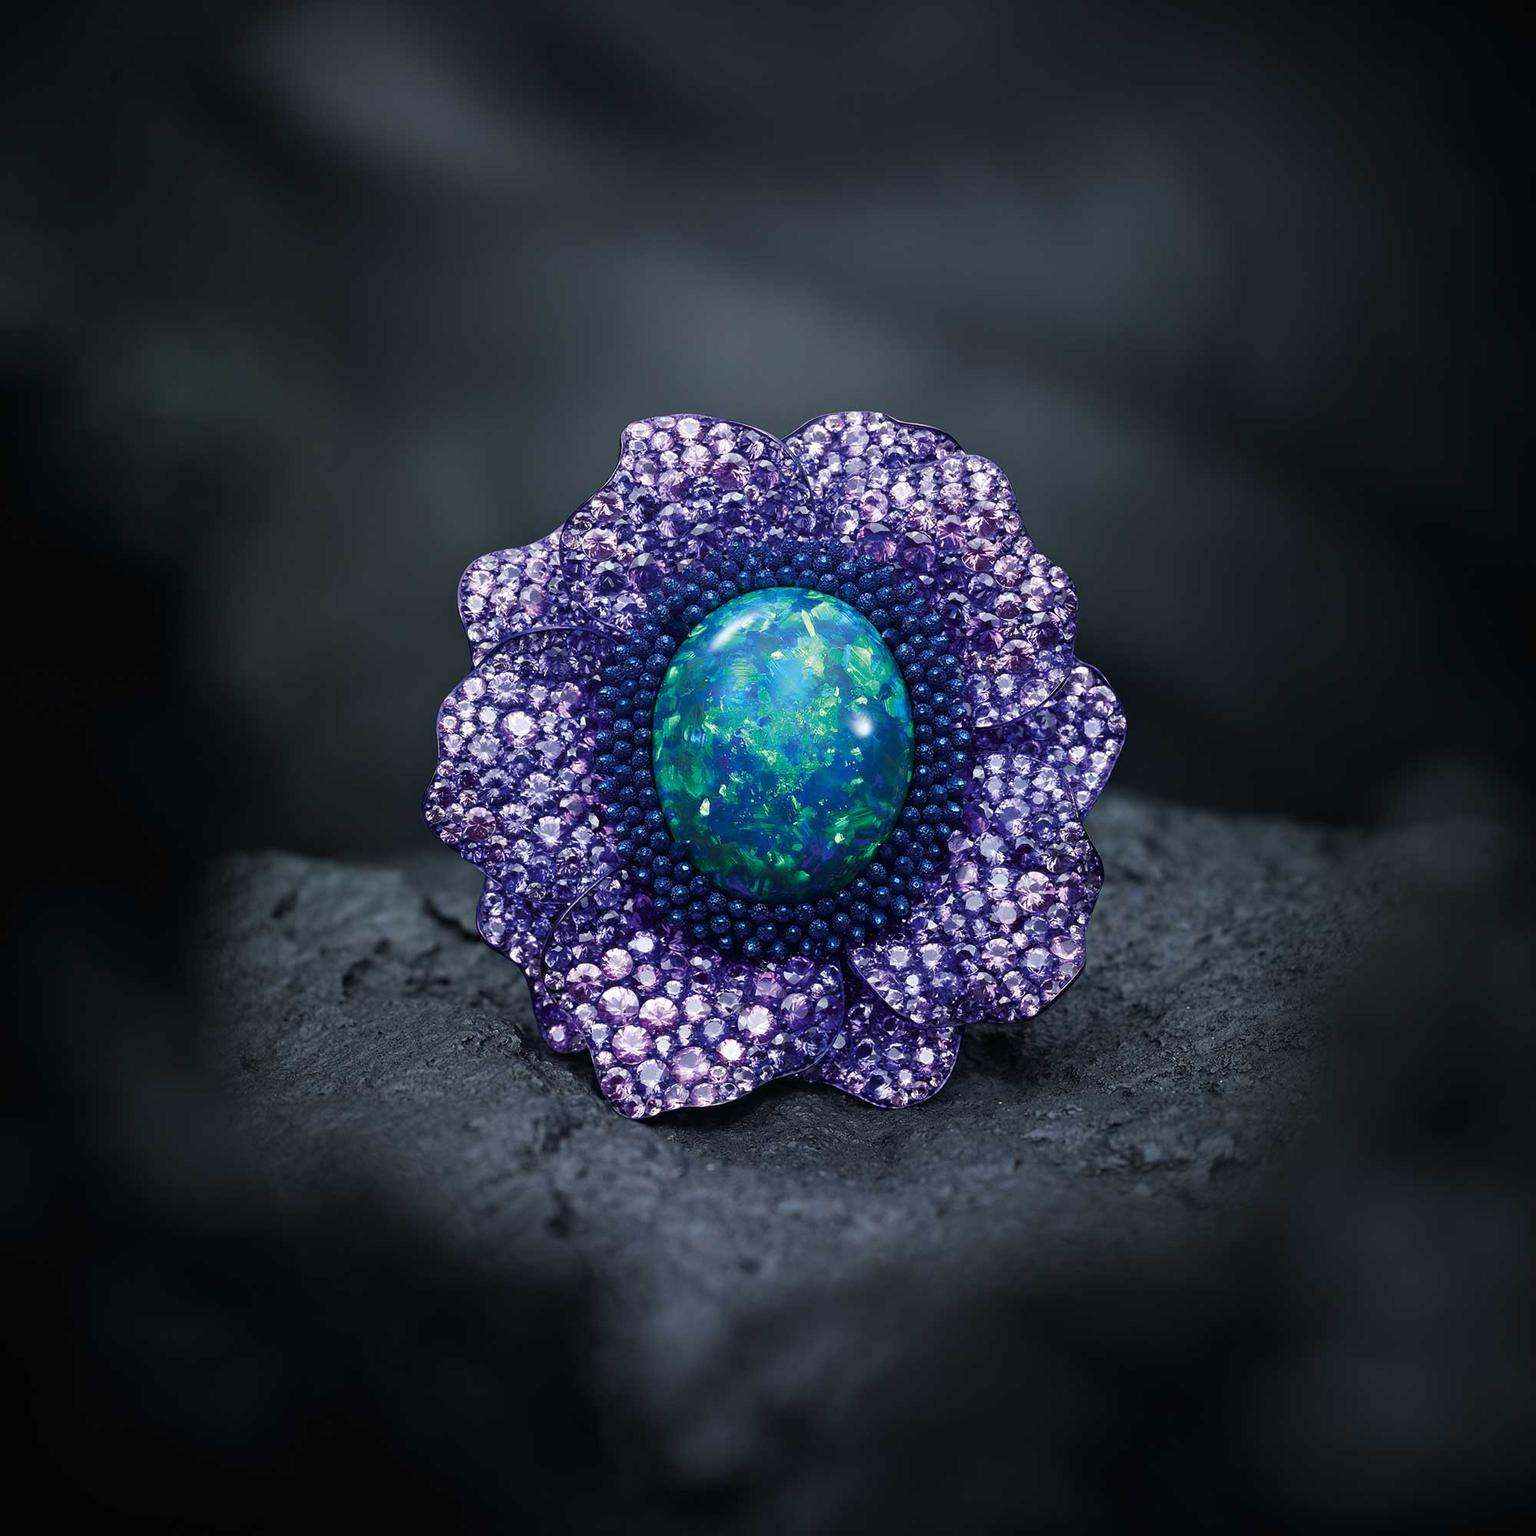 Chopard Fleurs d'Opales ring with purple sapphires